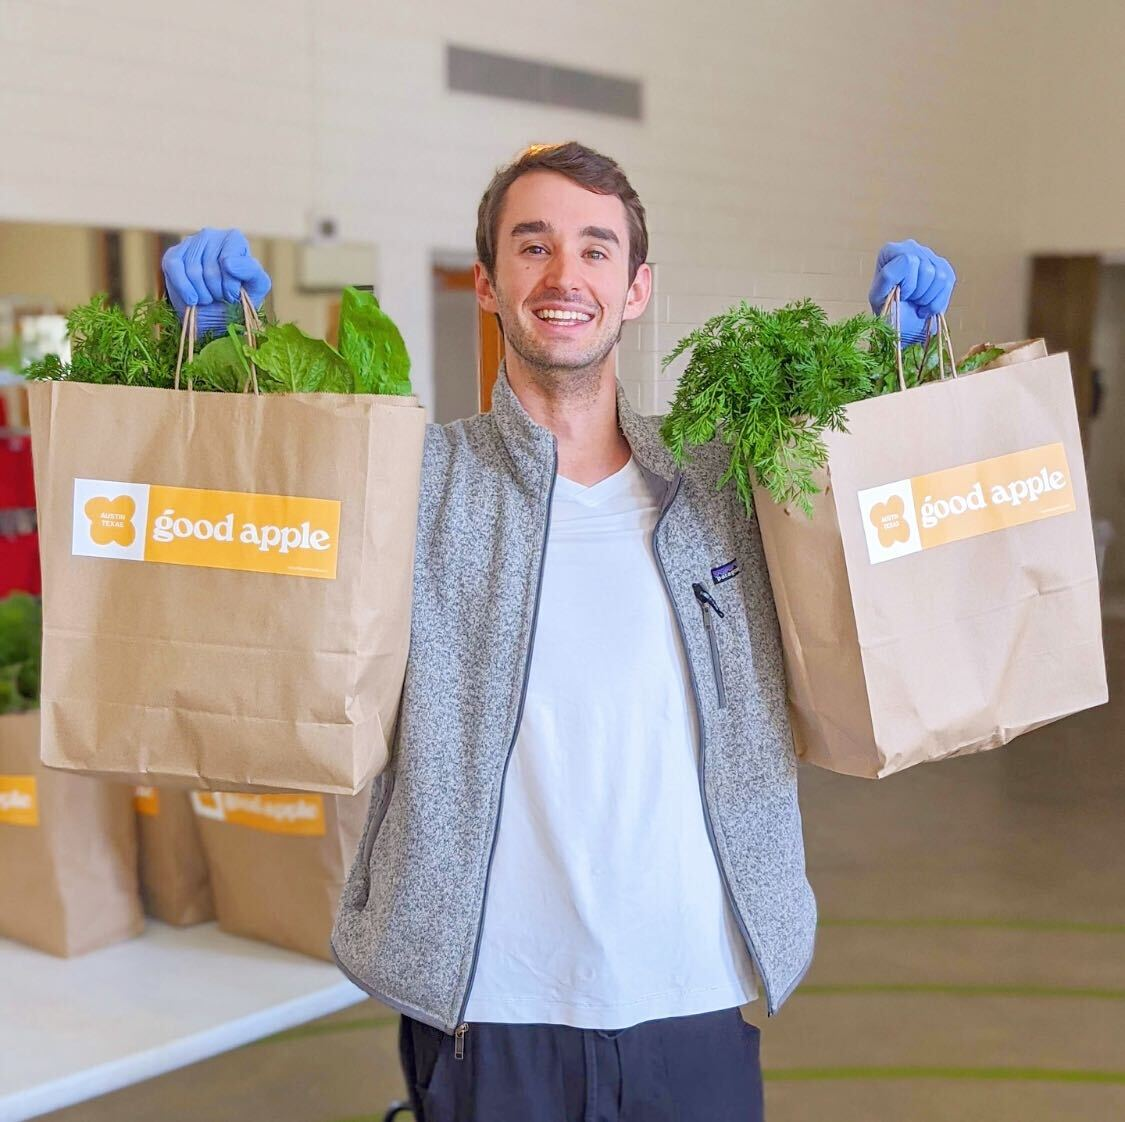 Zack holding bags